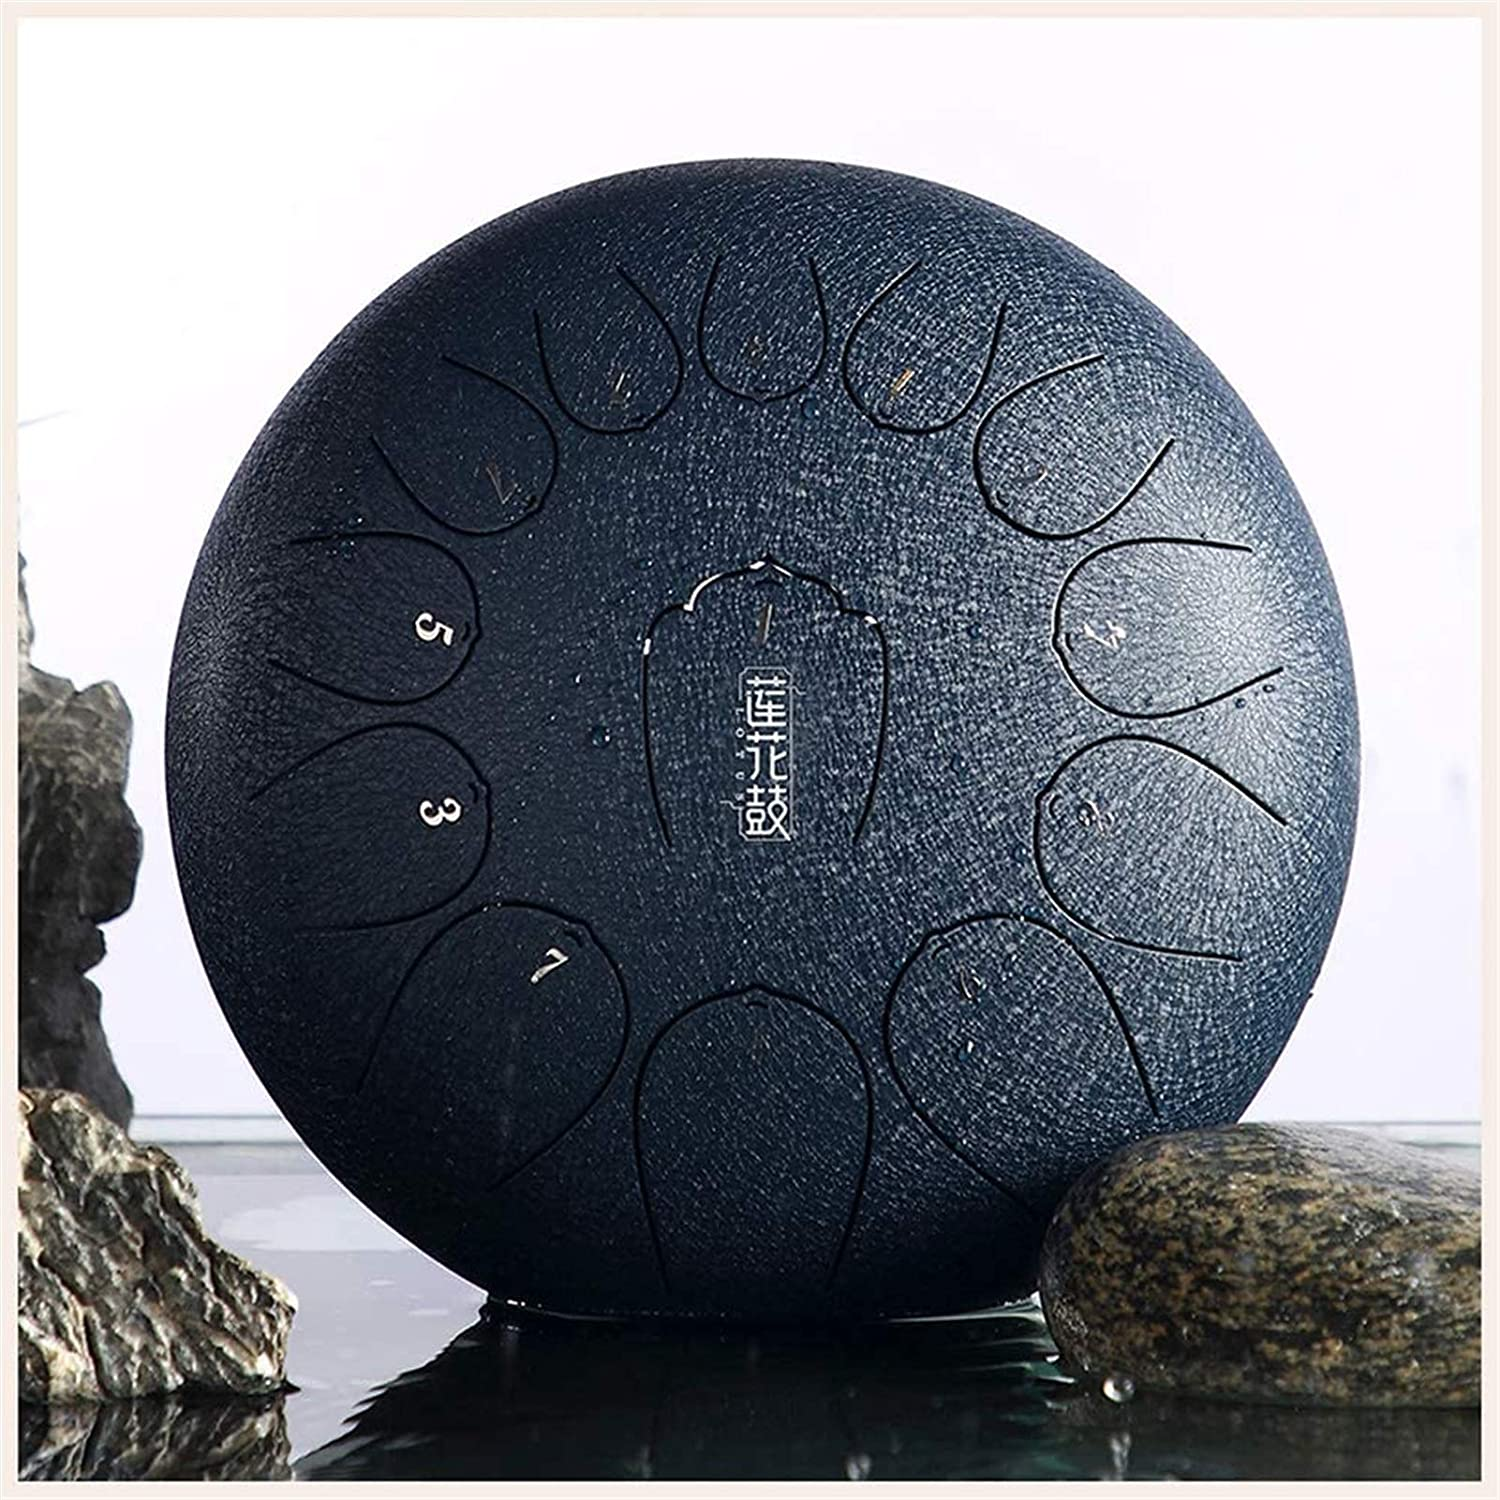 PIAOLIGN Outlet ☆ Free Sales Shipping Steel Tongue Drum Handpan I 13 12.5 Notes